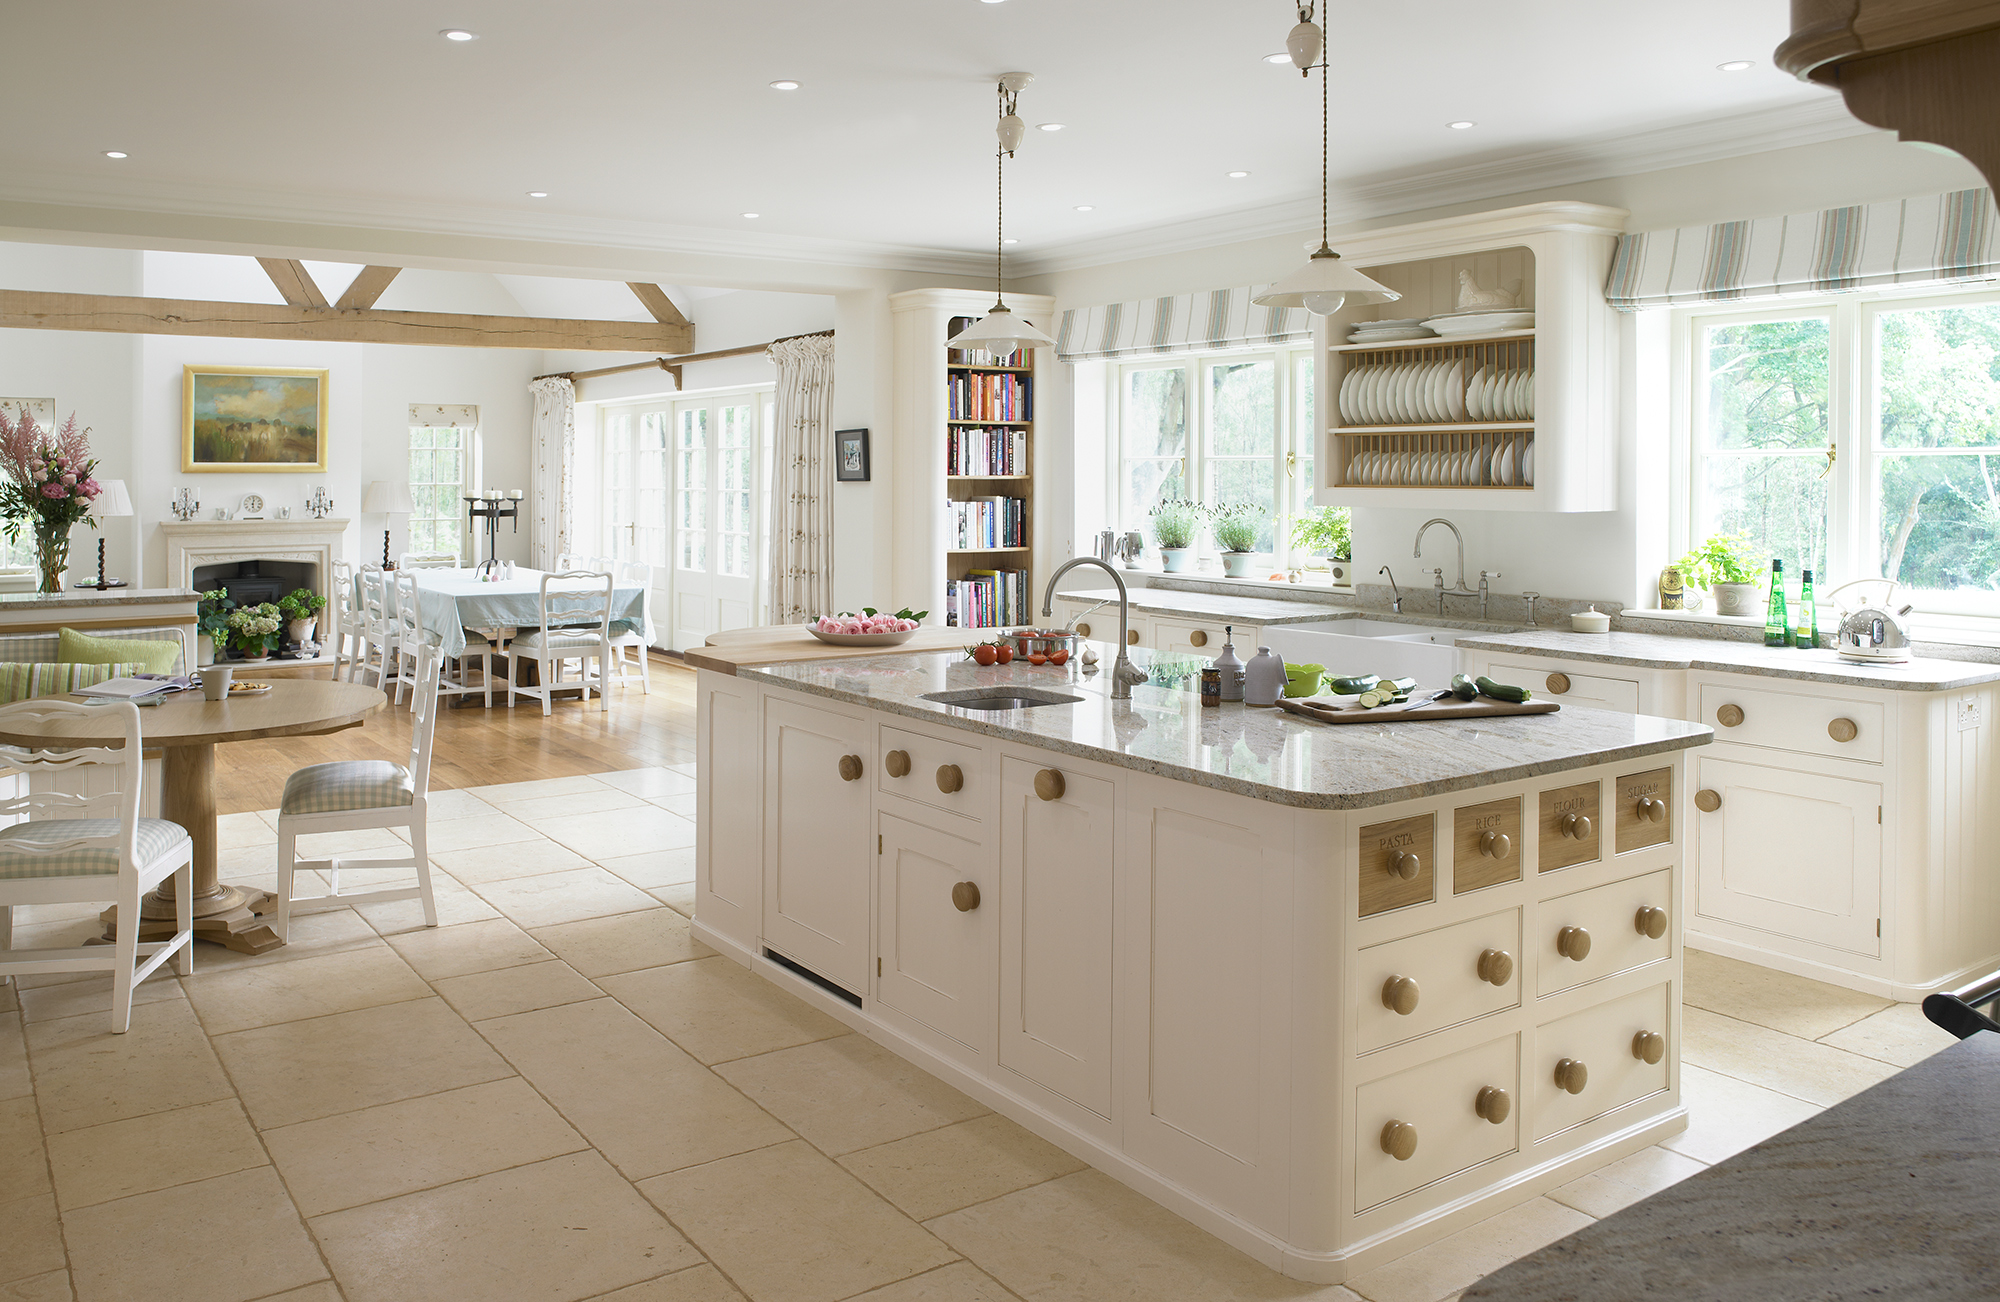 Luxury Bespoke Kitchens The Cook s Kitchen